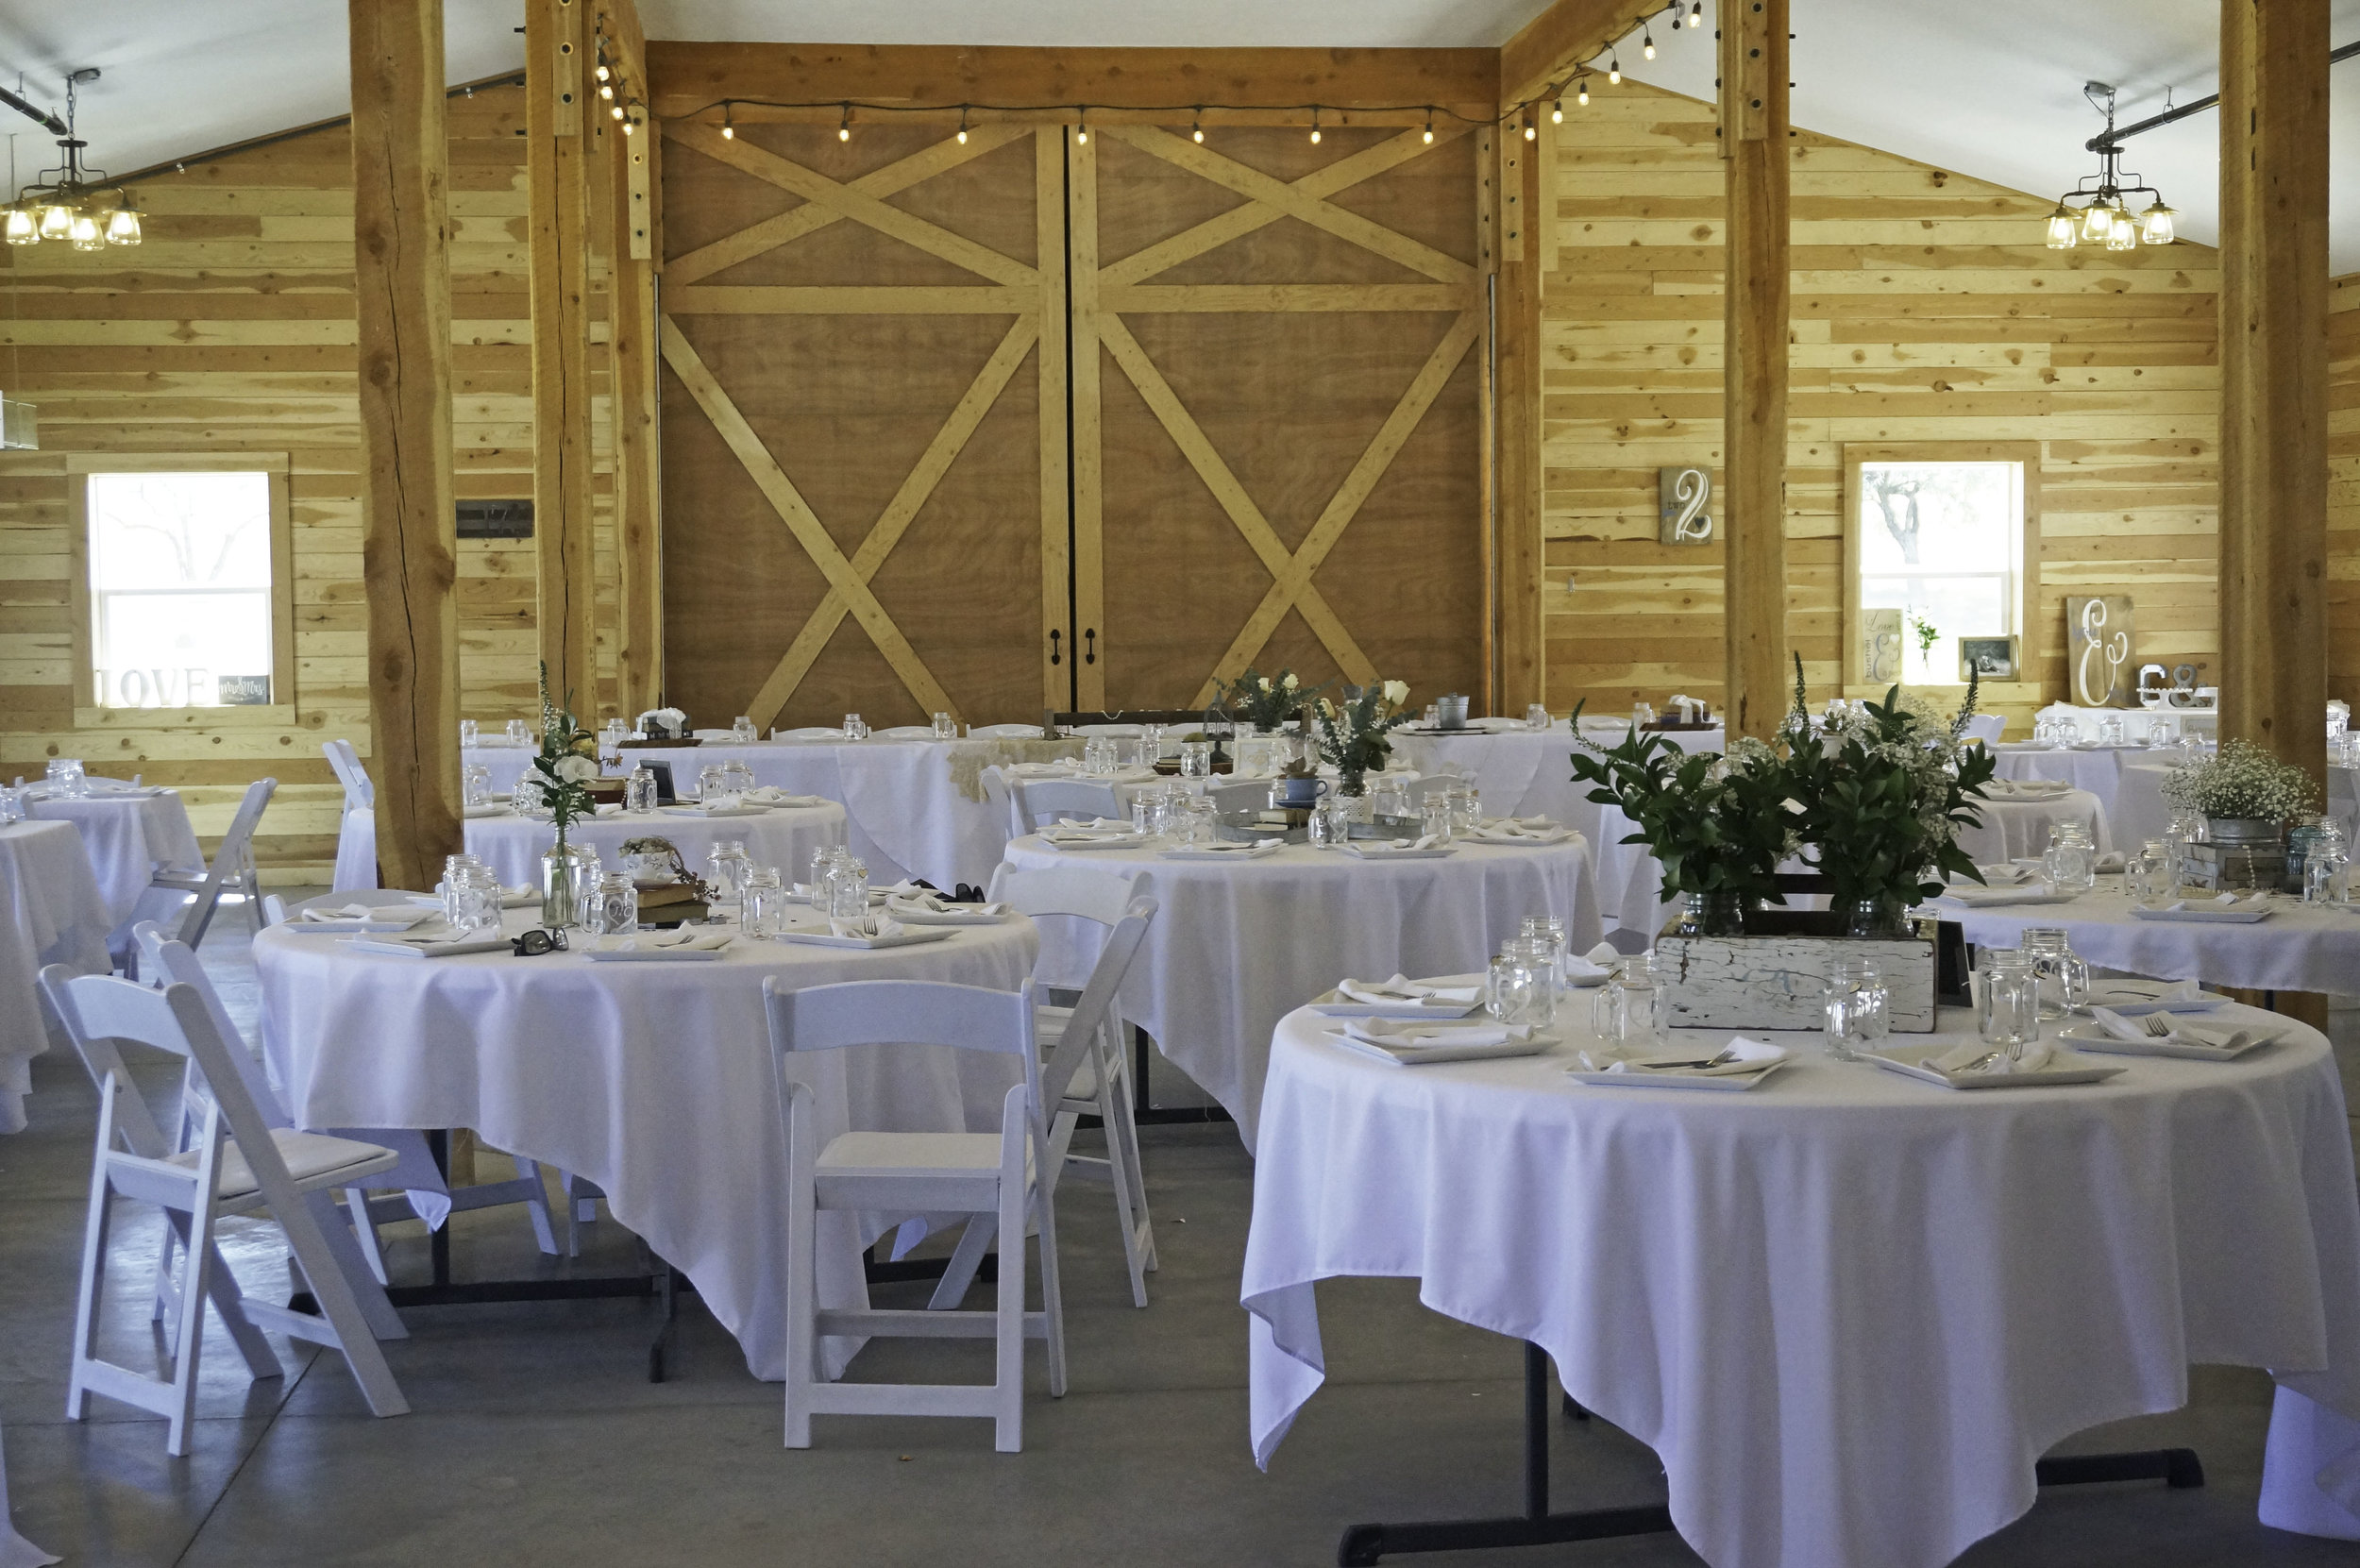 The barn looked elegant with all the handmade signs and beautiful greenery.